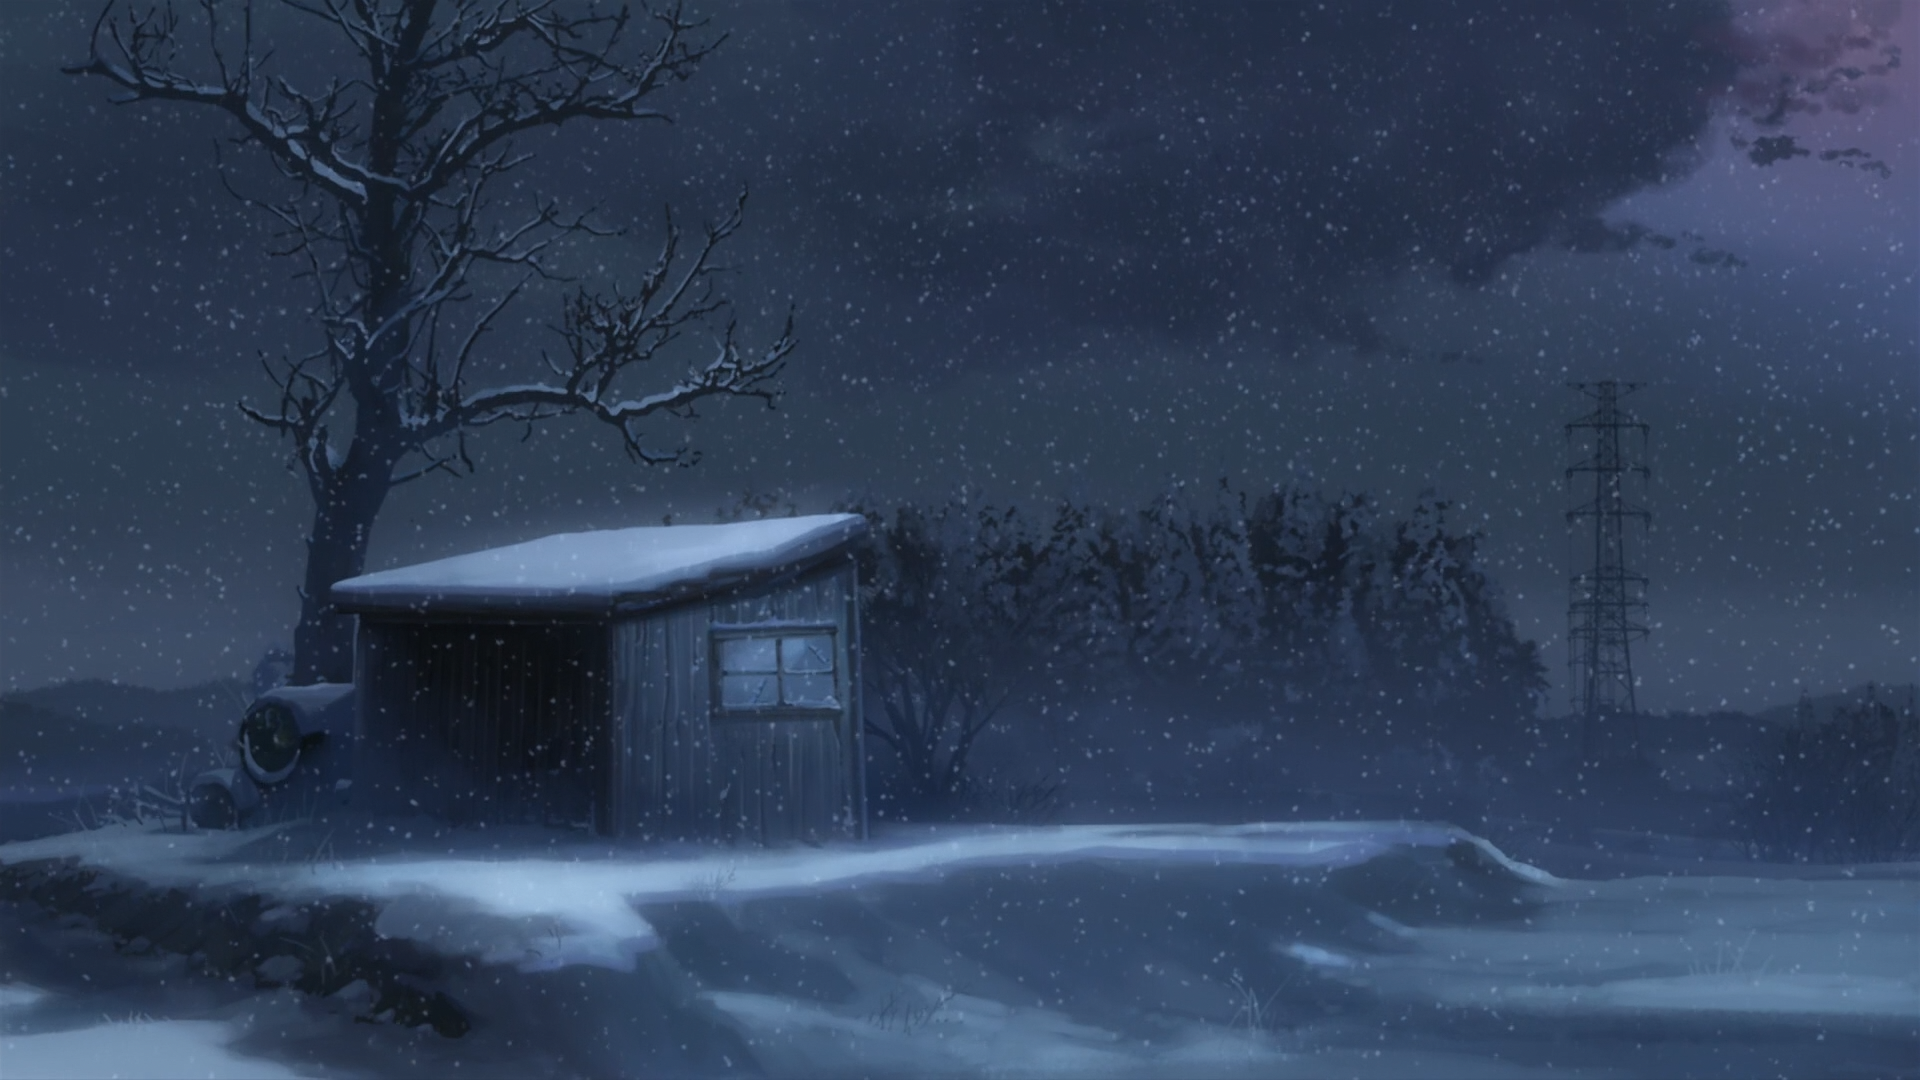 5 Centimeters Per Second Hd Wallpaper Background Image 1920x1080 Id321632 Wallpaper Abyss